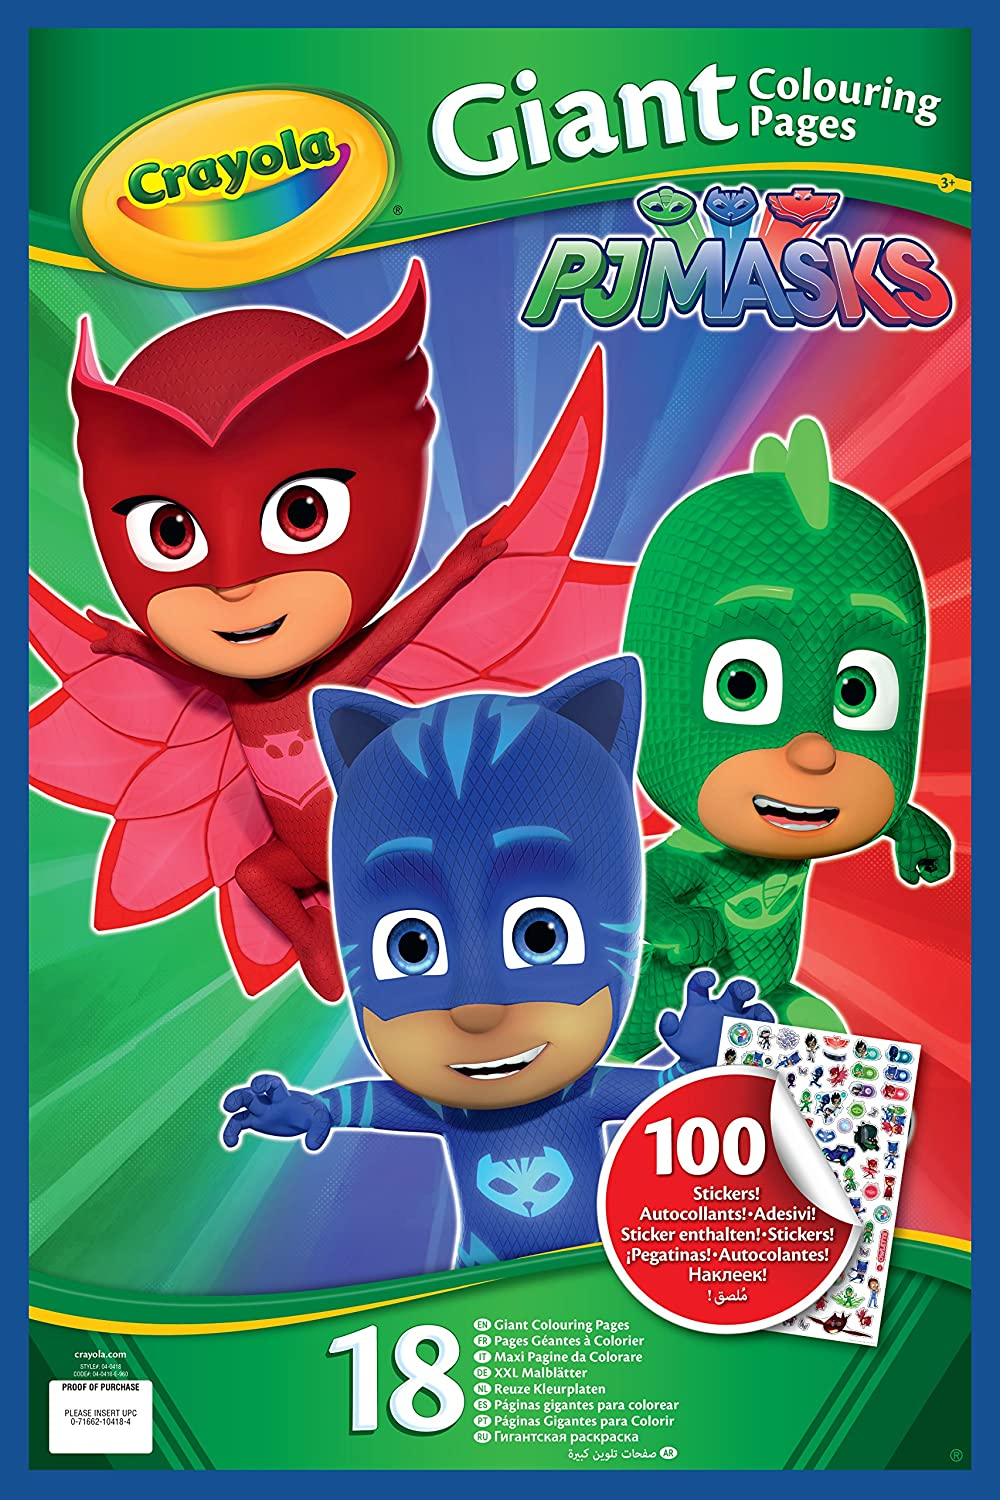 Crayola Giant Colouring Book With Stickers Pj Masks Pages 04 0418